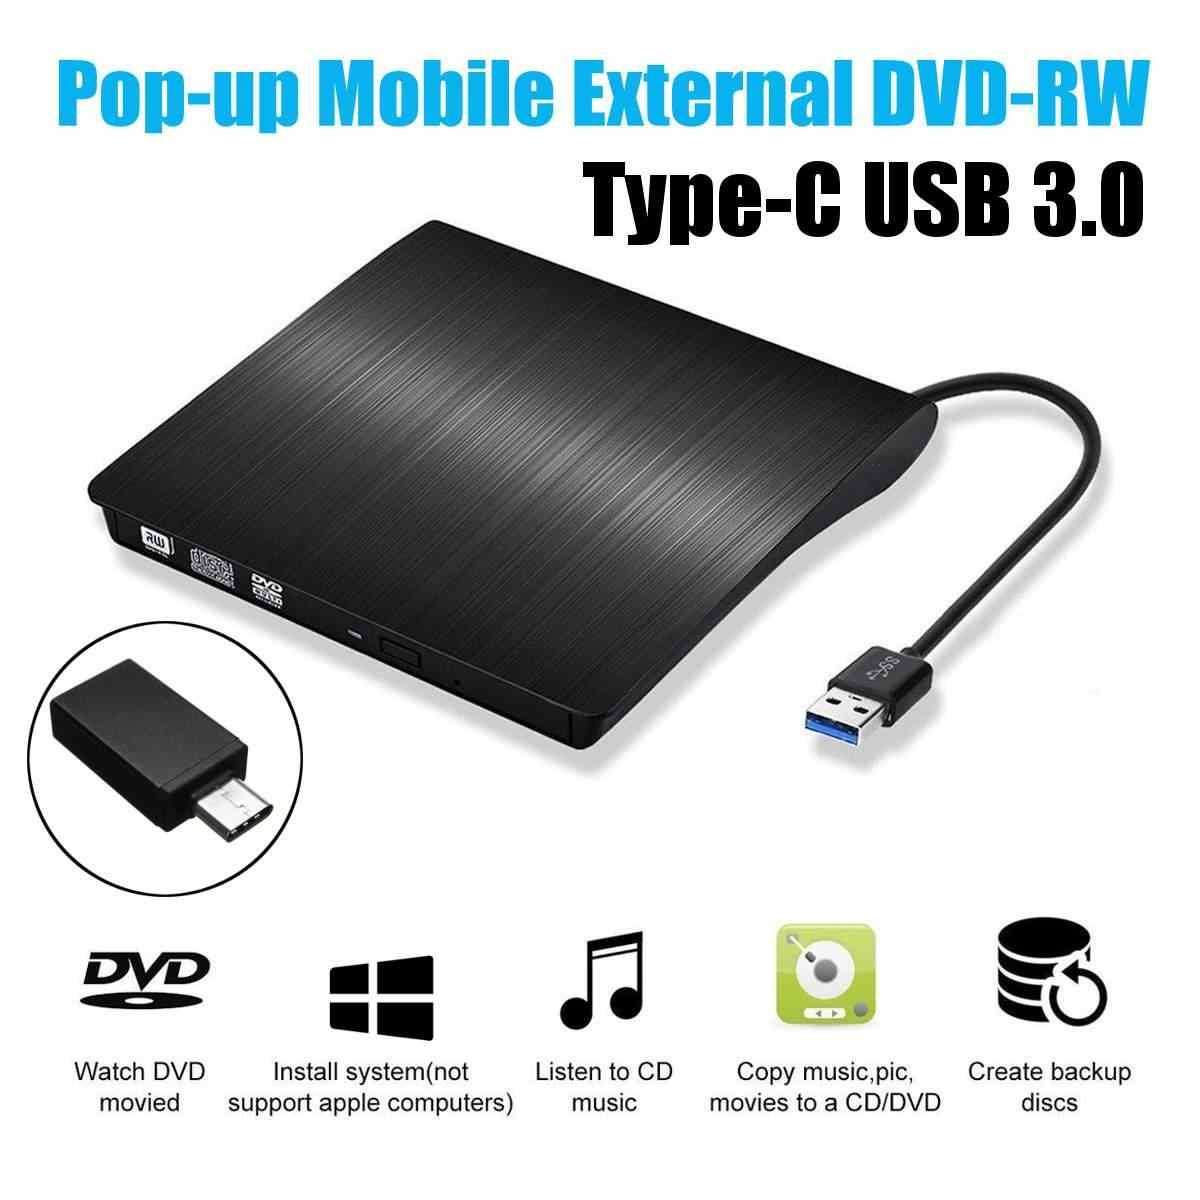 Grabador externo de DVD/CD/VCD USB 3,0 tipo C reproductor de unidad RW dvcd Unidad óptica para Mac/PC/Apple Laptop/OS/Windows